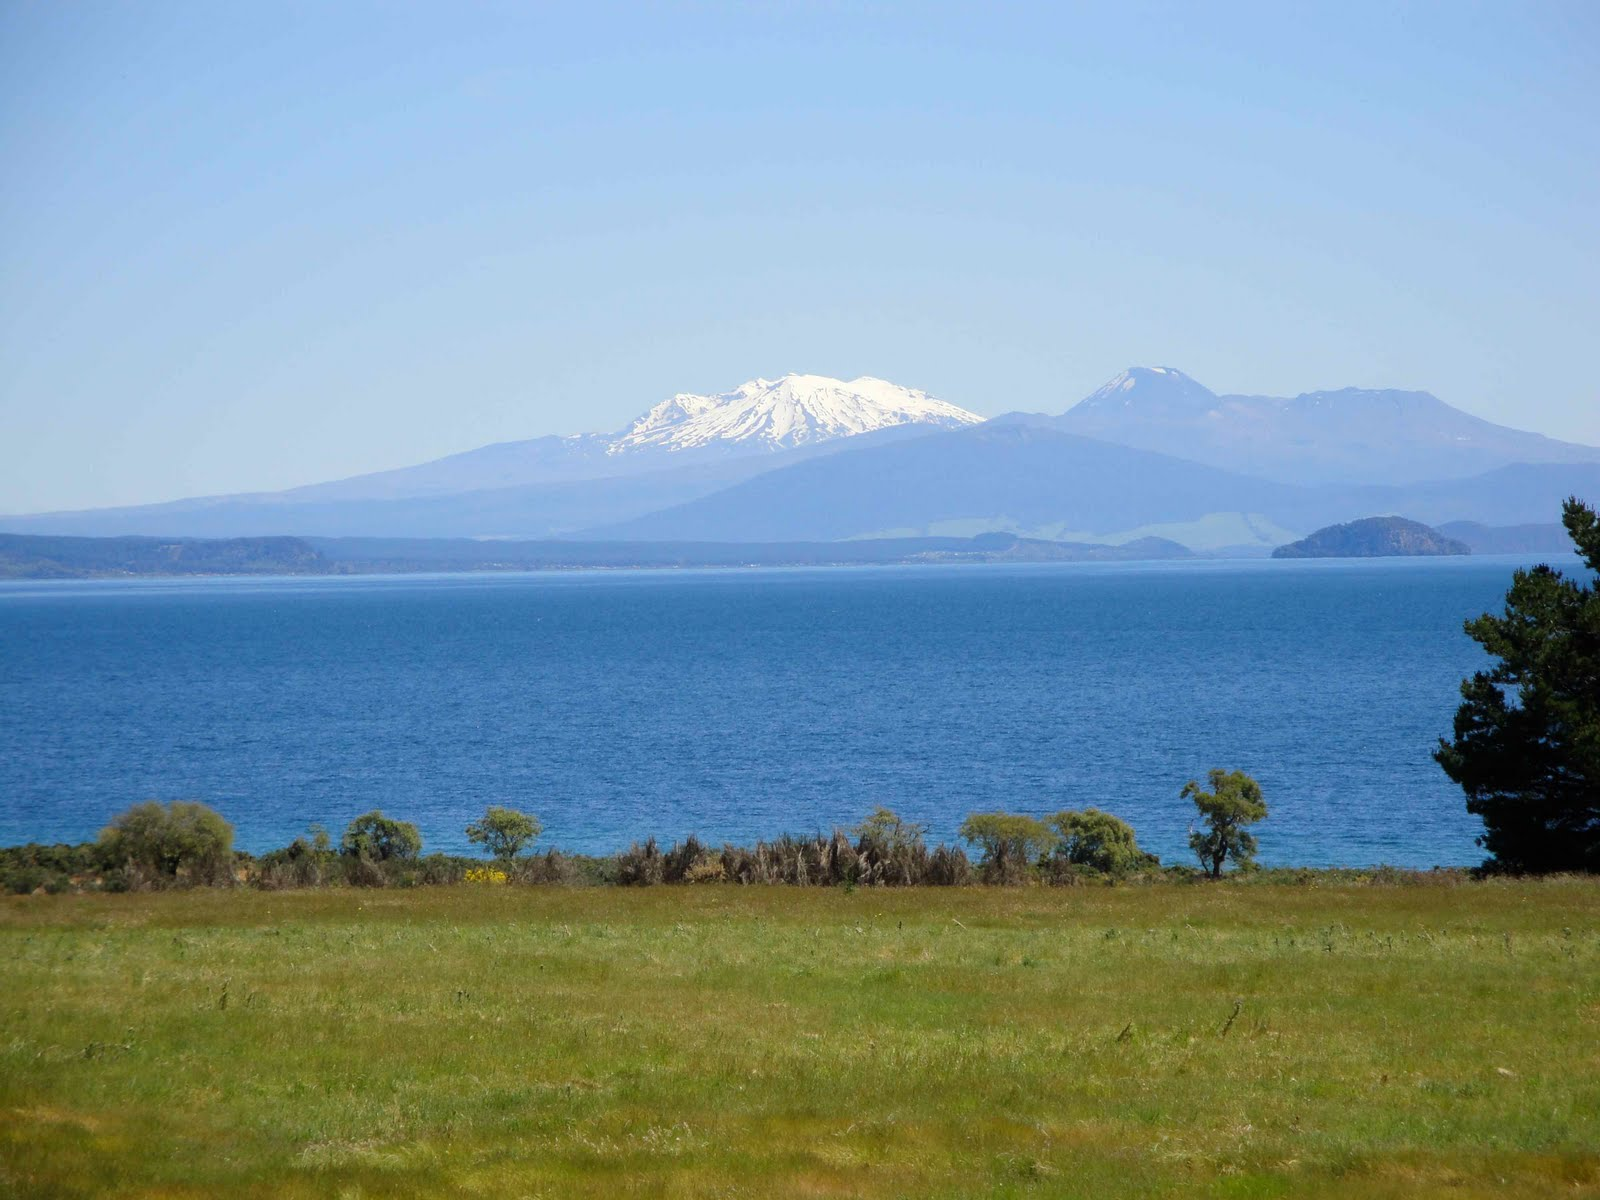 Taupo New Zealand  city pictures gallery : Mt. Ruapehu, Lake Taupo, New Zealand, Landolia, a World of Photos